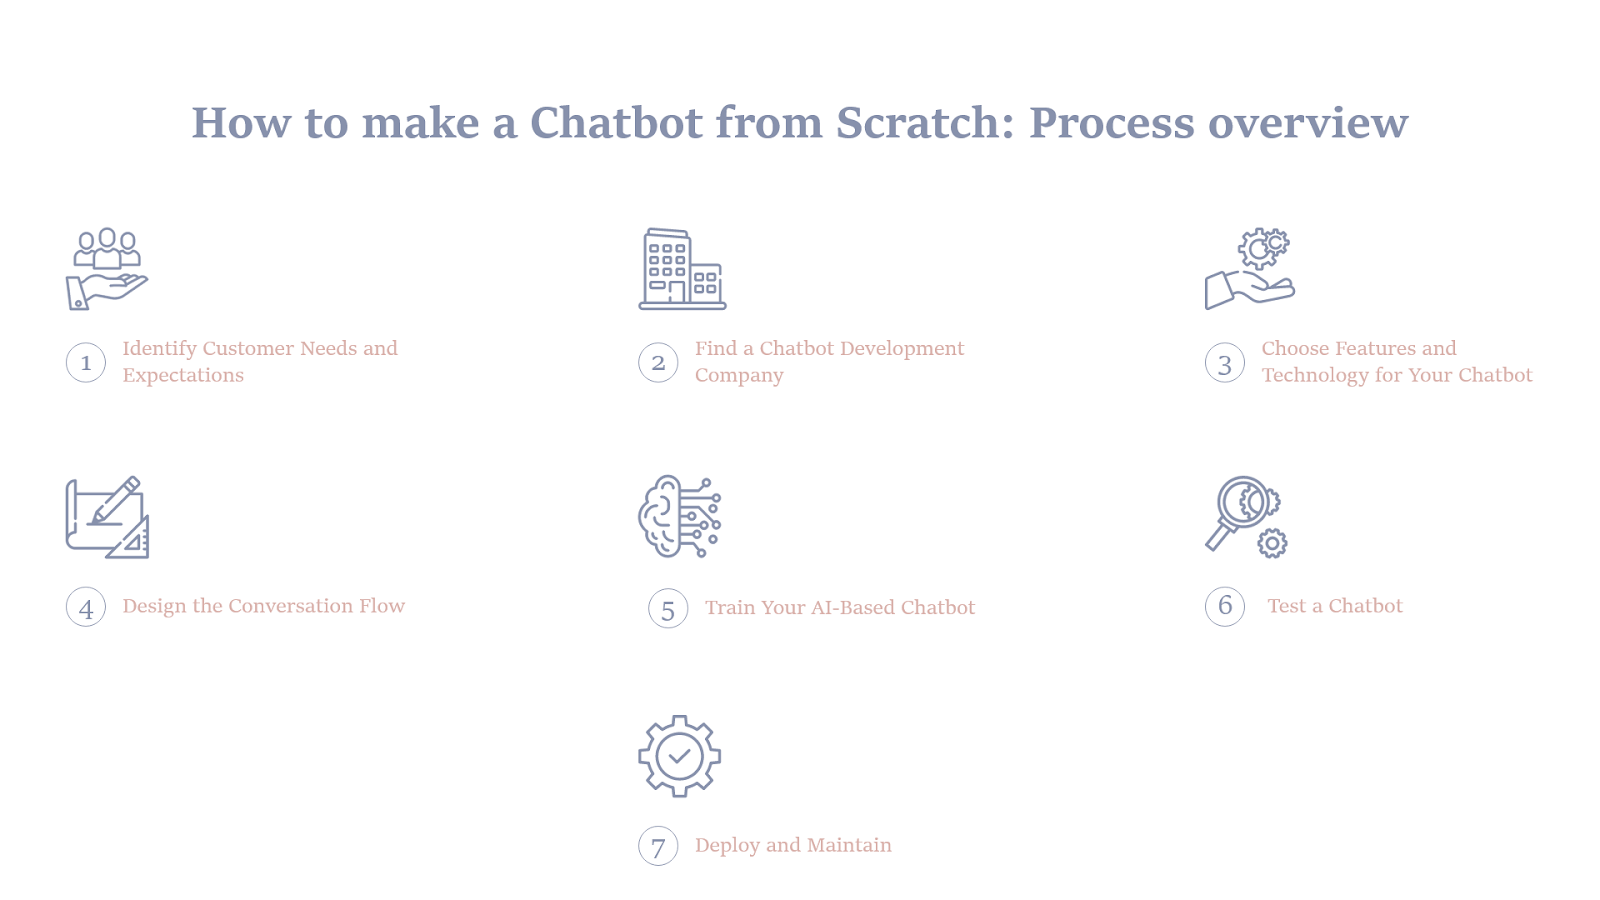 How to Make a Chatbot from Scratch: Process Overview